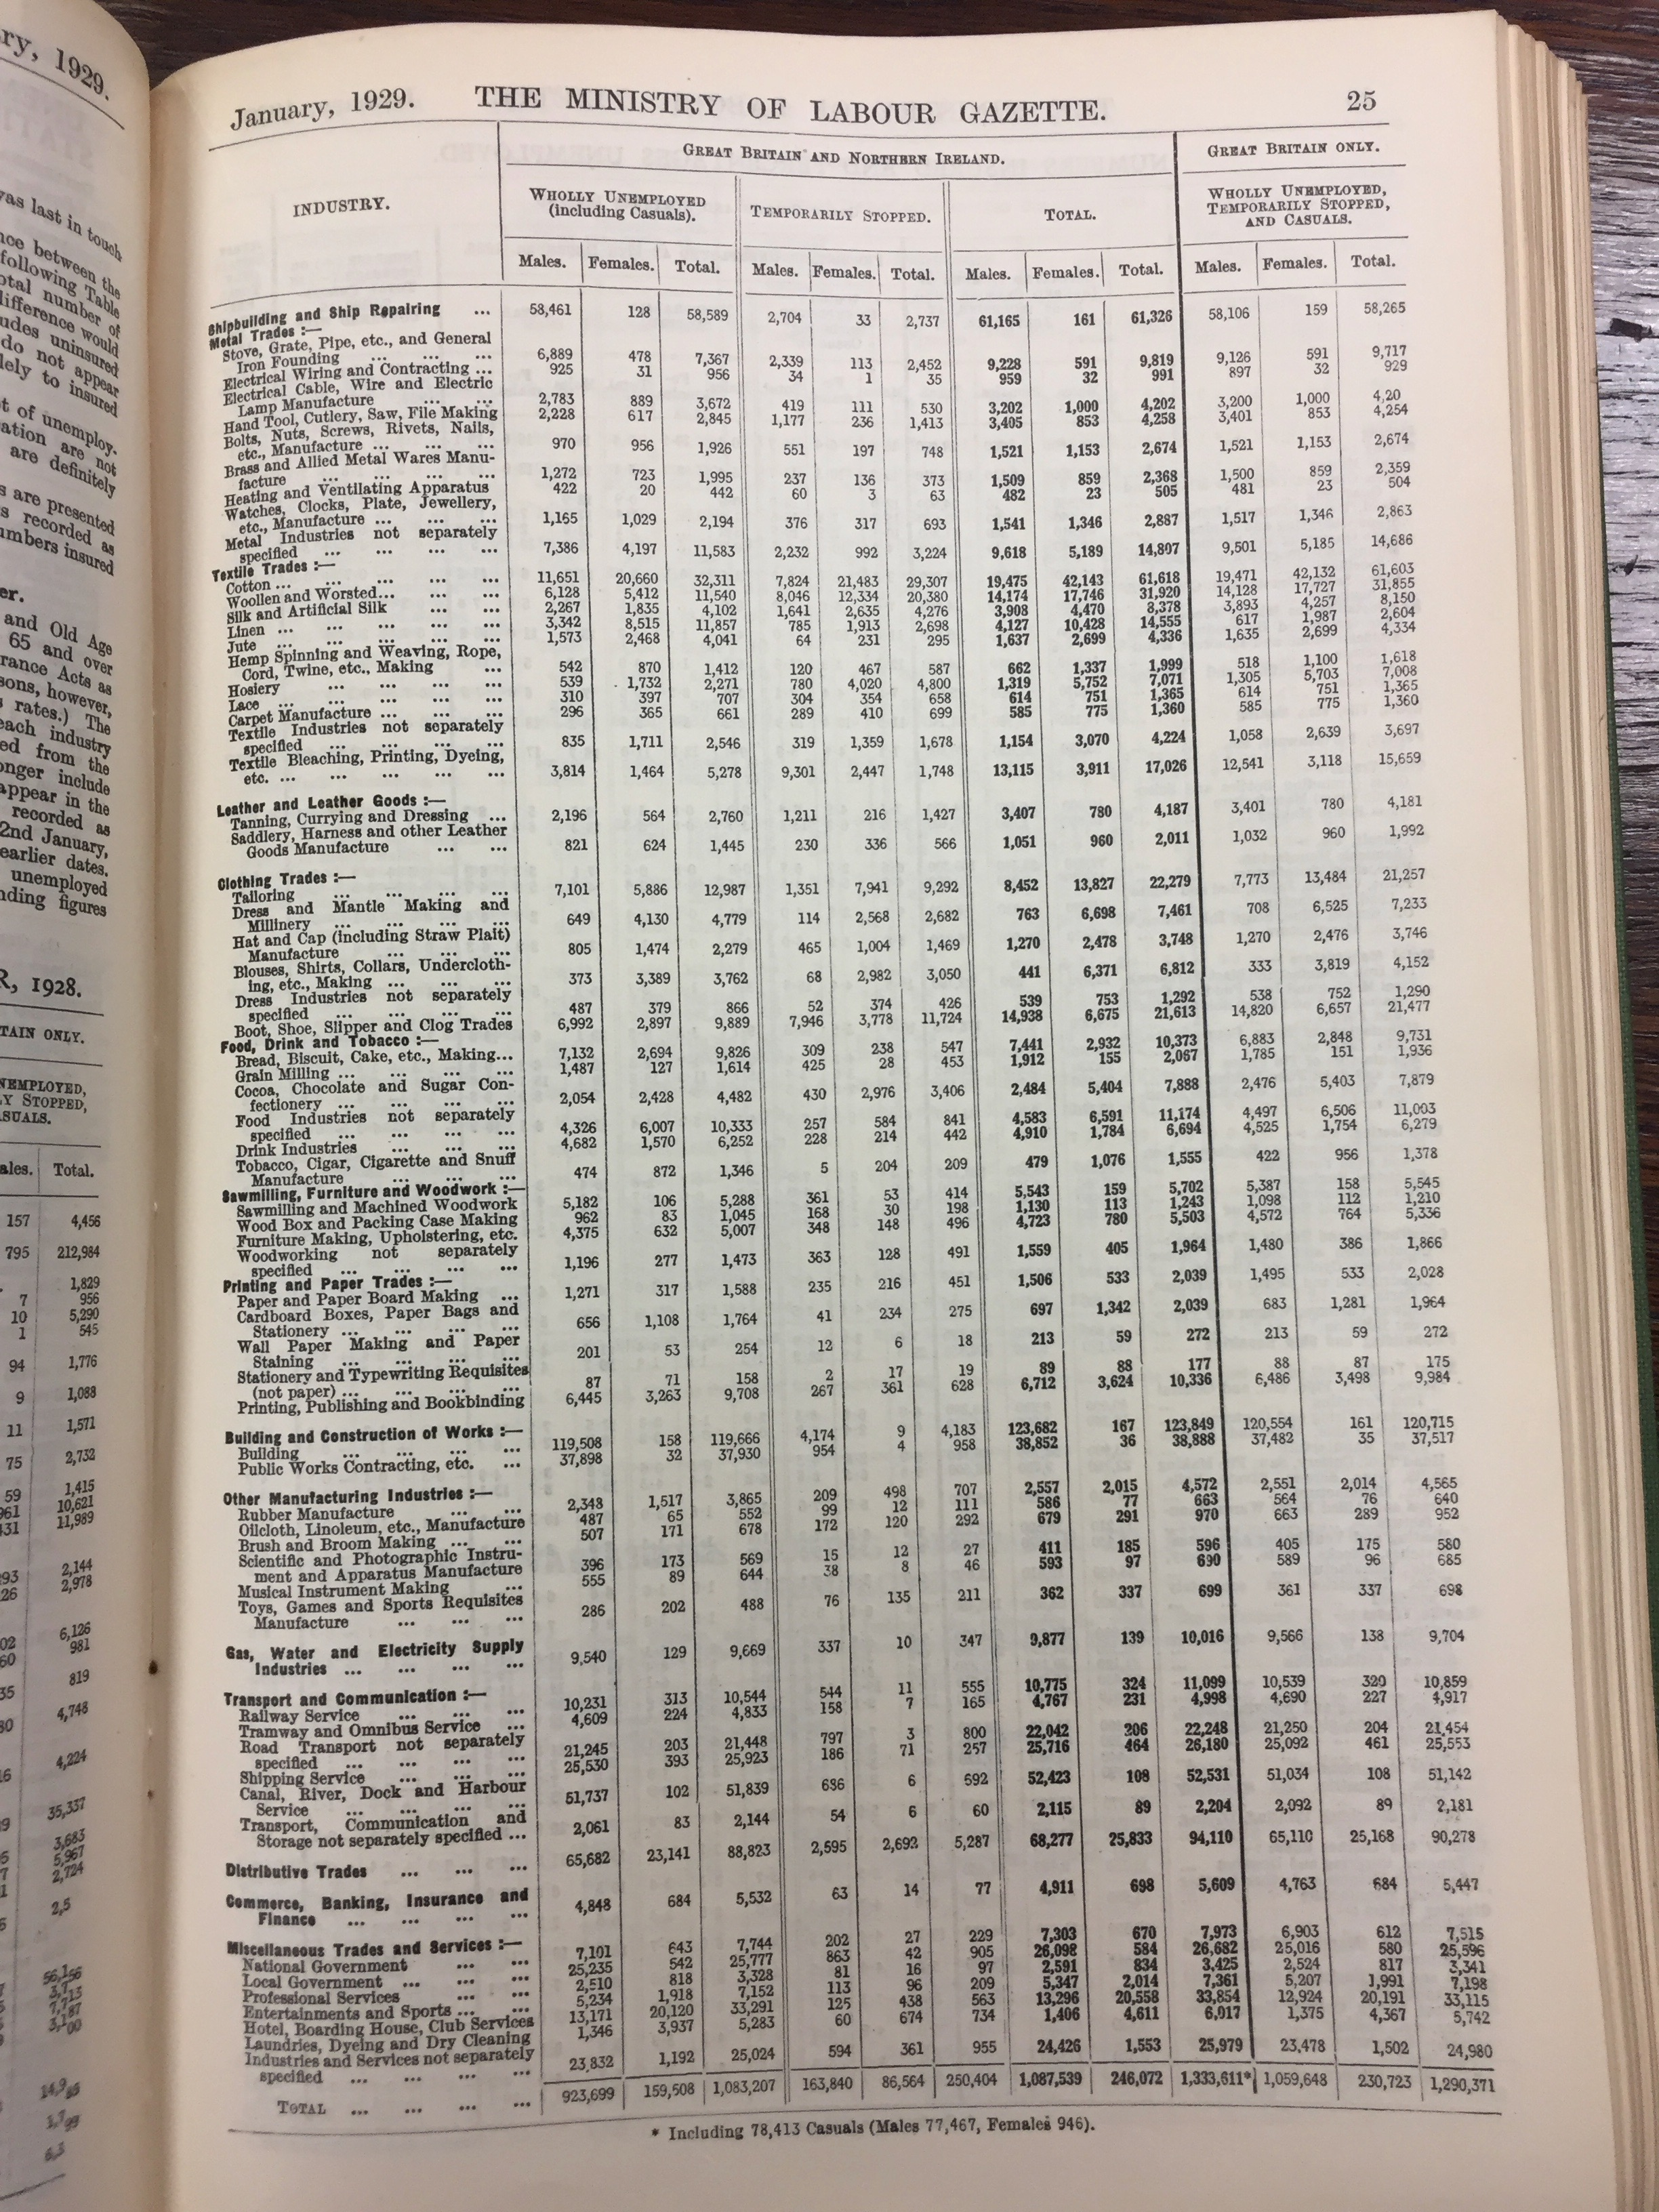 Before (data in book)